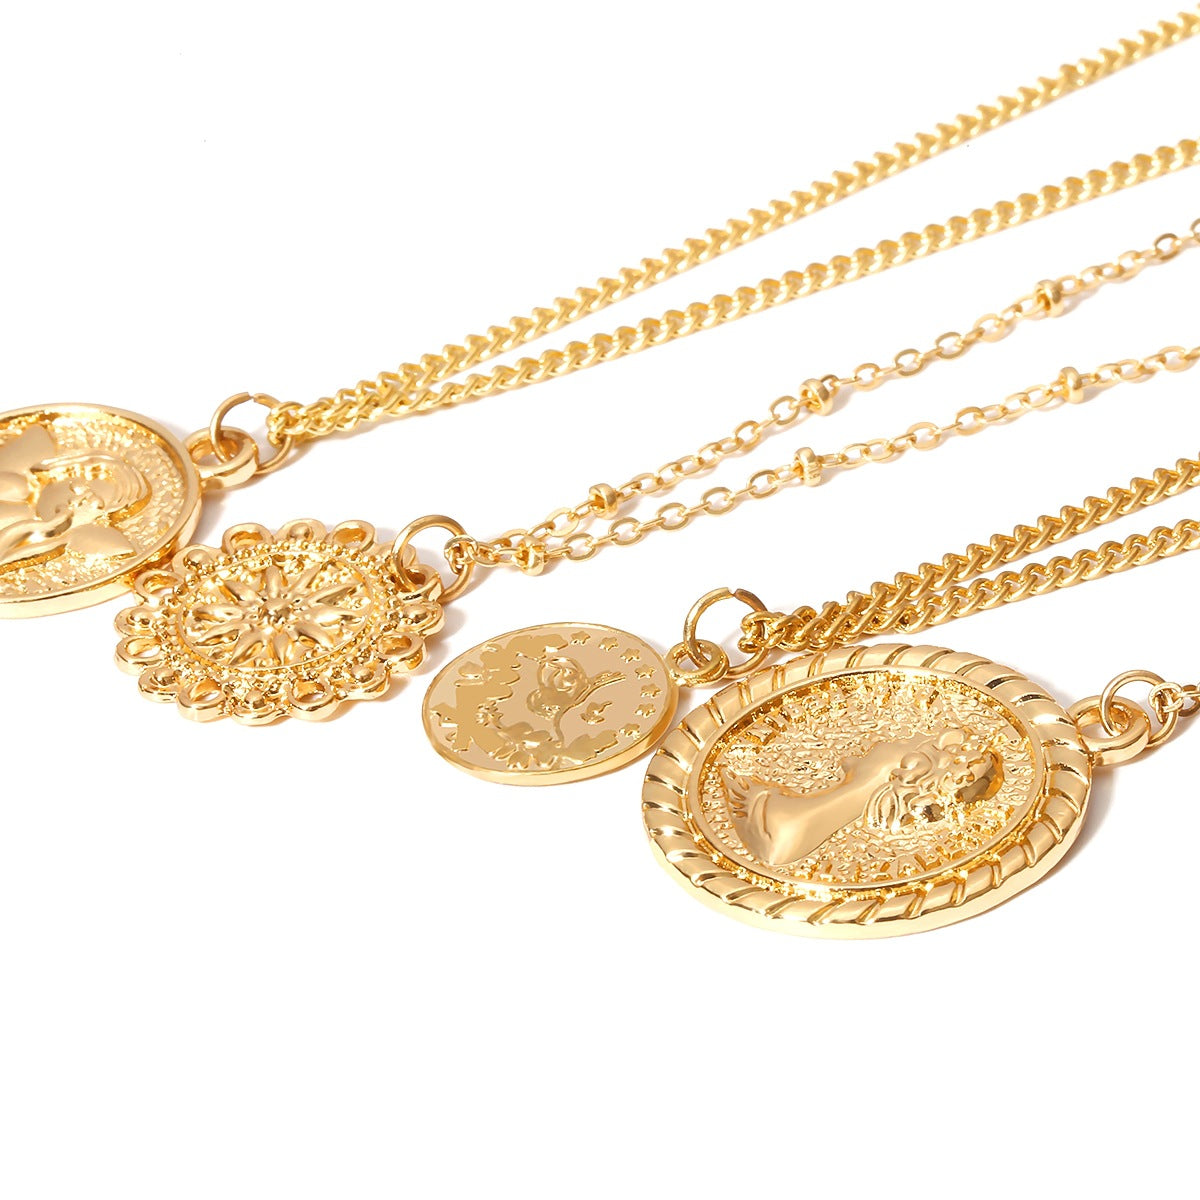 Zarni - Layered Beaded Gold Coin Necklace